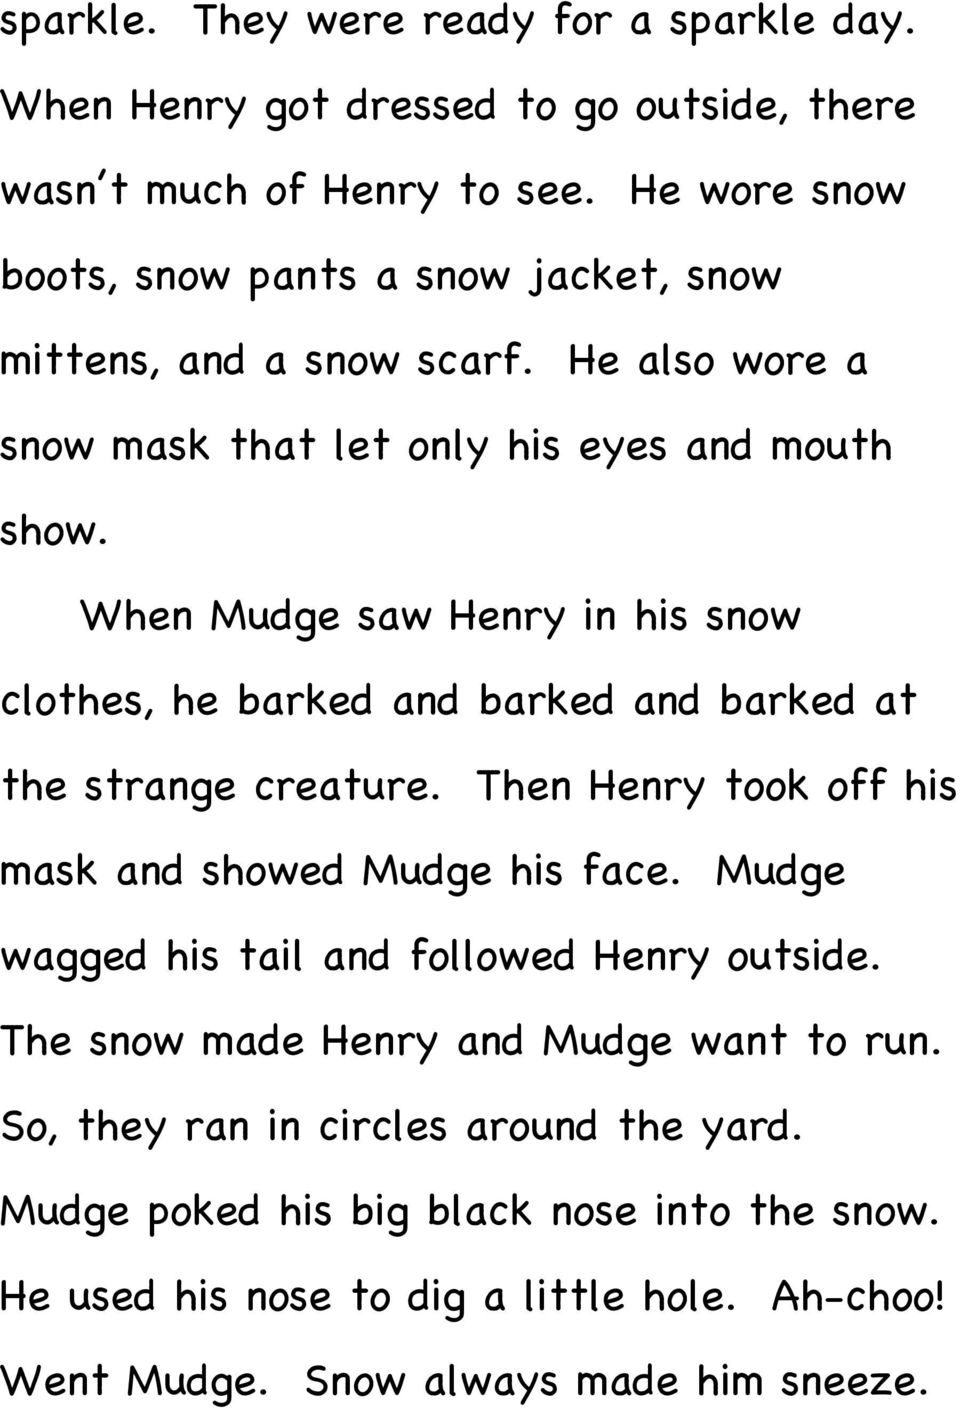 When Mudge saw Henry in his snow clothes, he barked and barked and barked at the strange creature. Then Henry took off his mask and showed Mudge his face.